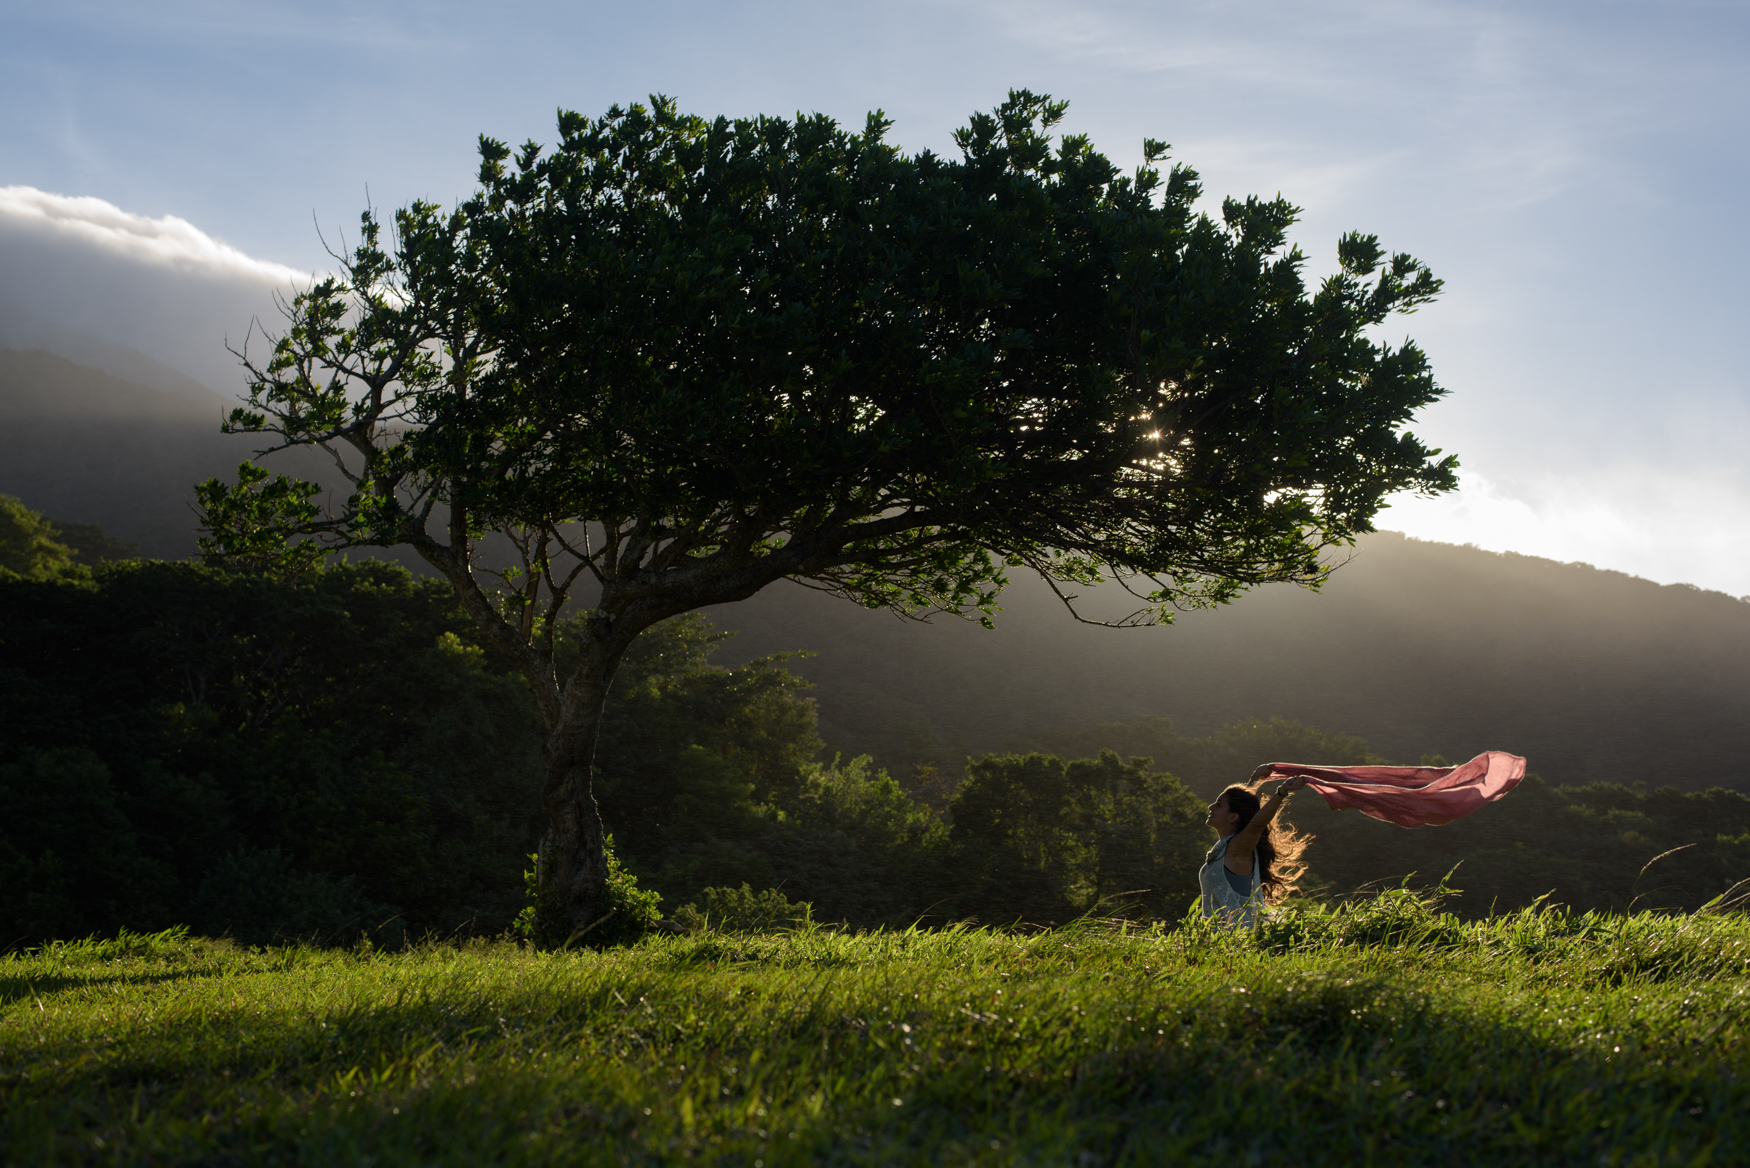 Yoga-Inspired-Practices-Photography-Costa-Rica-3.jpg